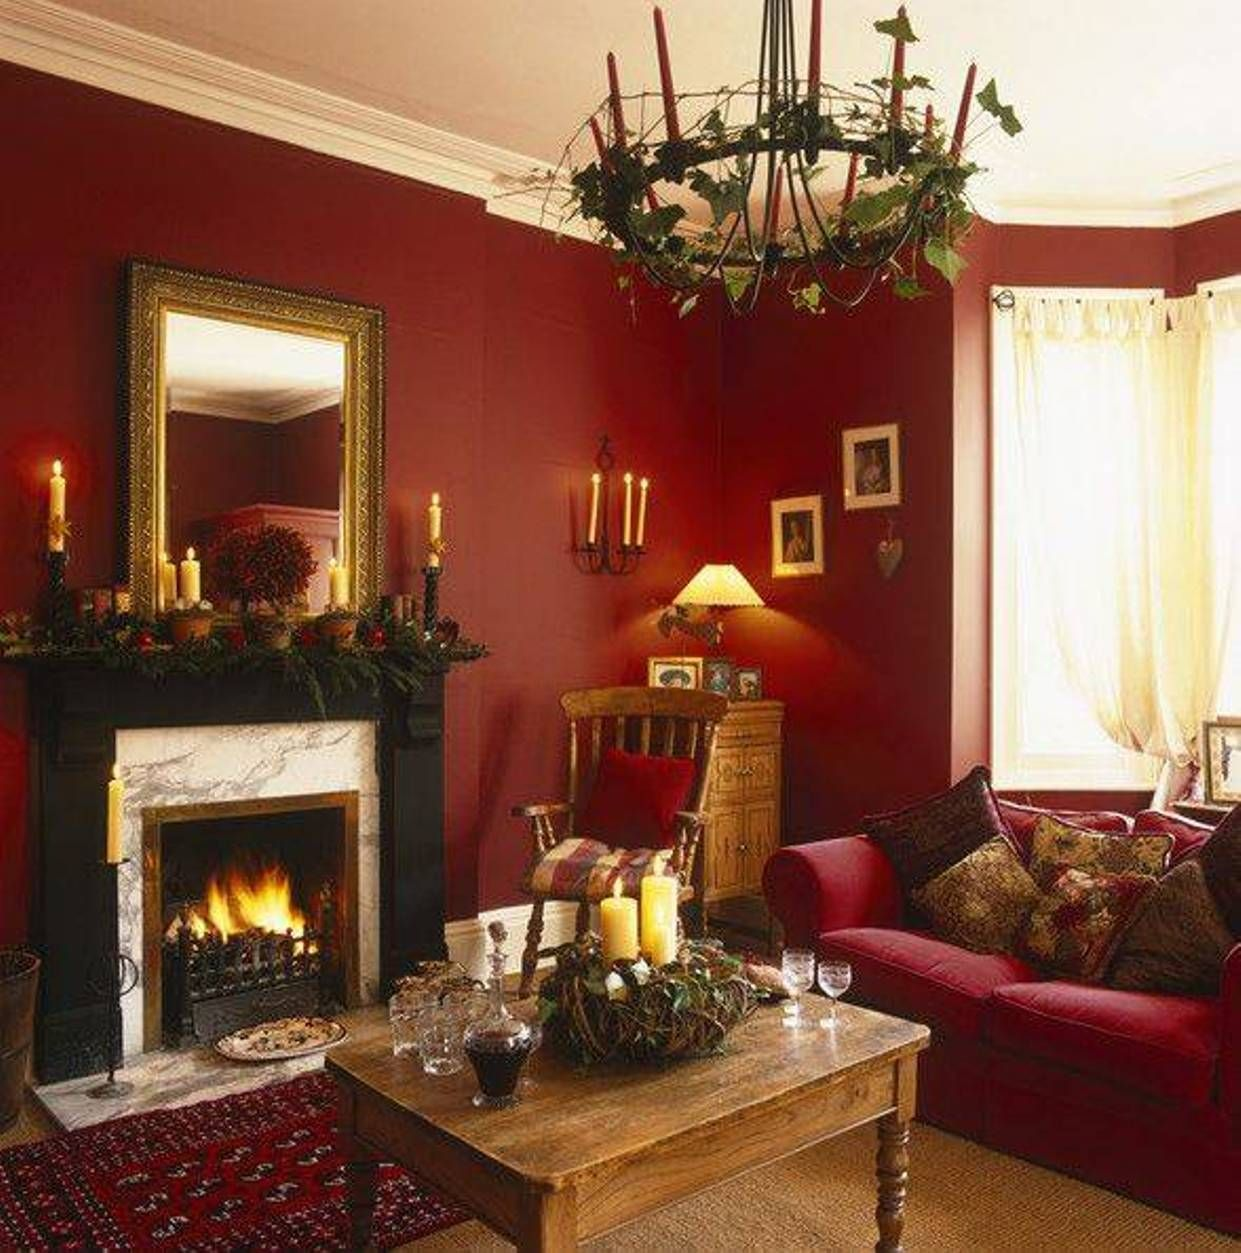 Red Living Room Color Schemes red gold brown color scheme - Google Search